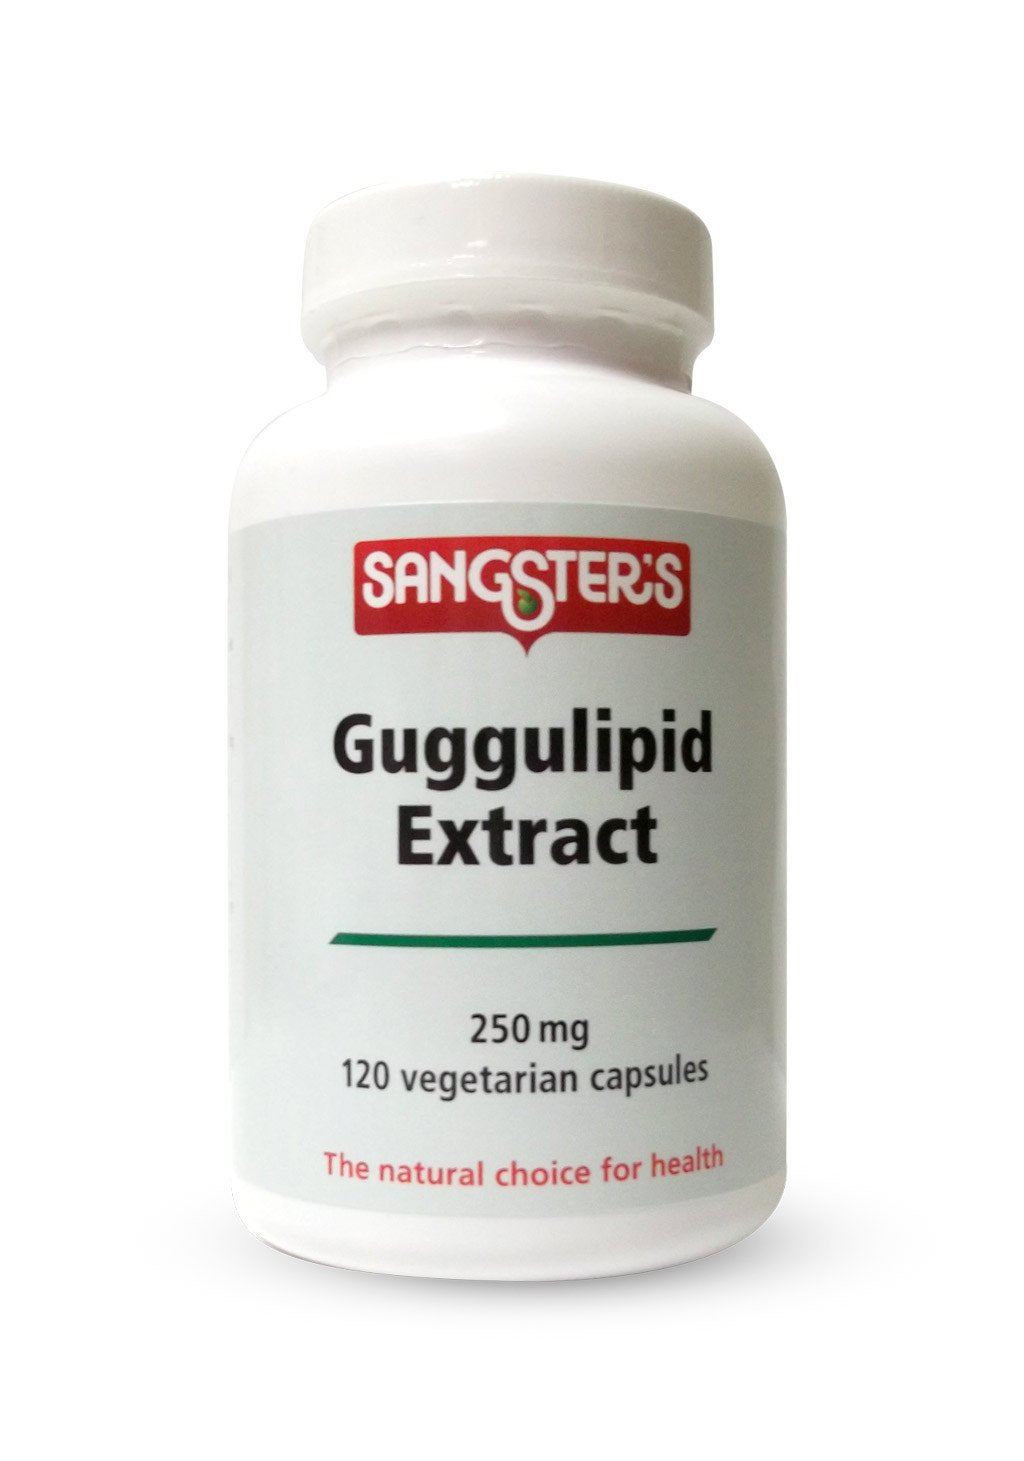 SANGSTER'S GUGGULIPID 250MG STANDARDIZED EXTRACT (40% off)